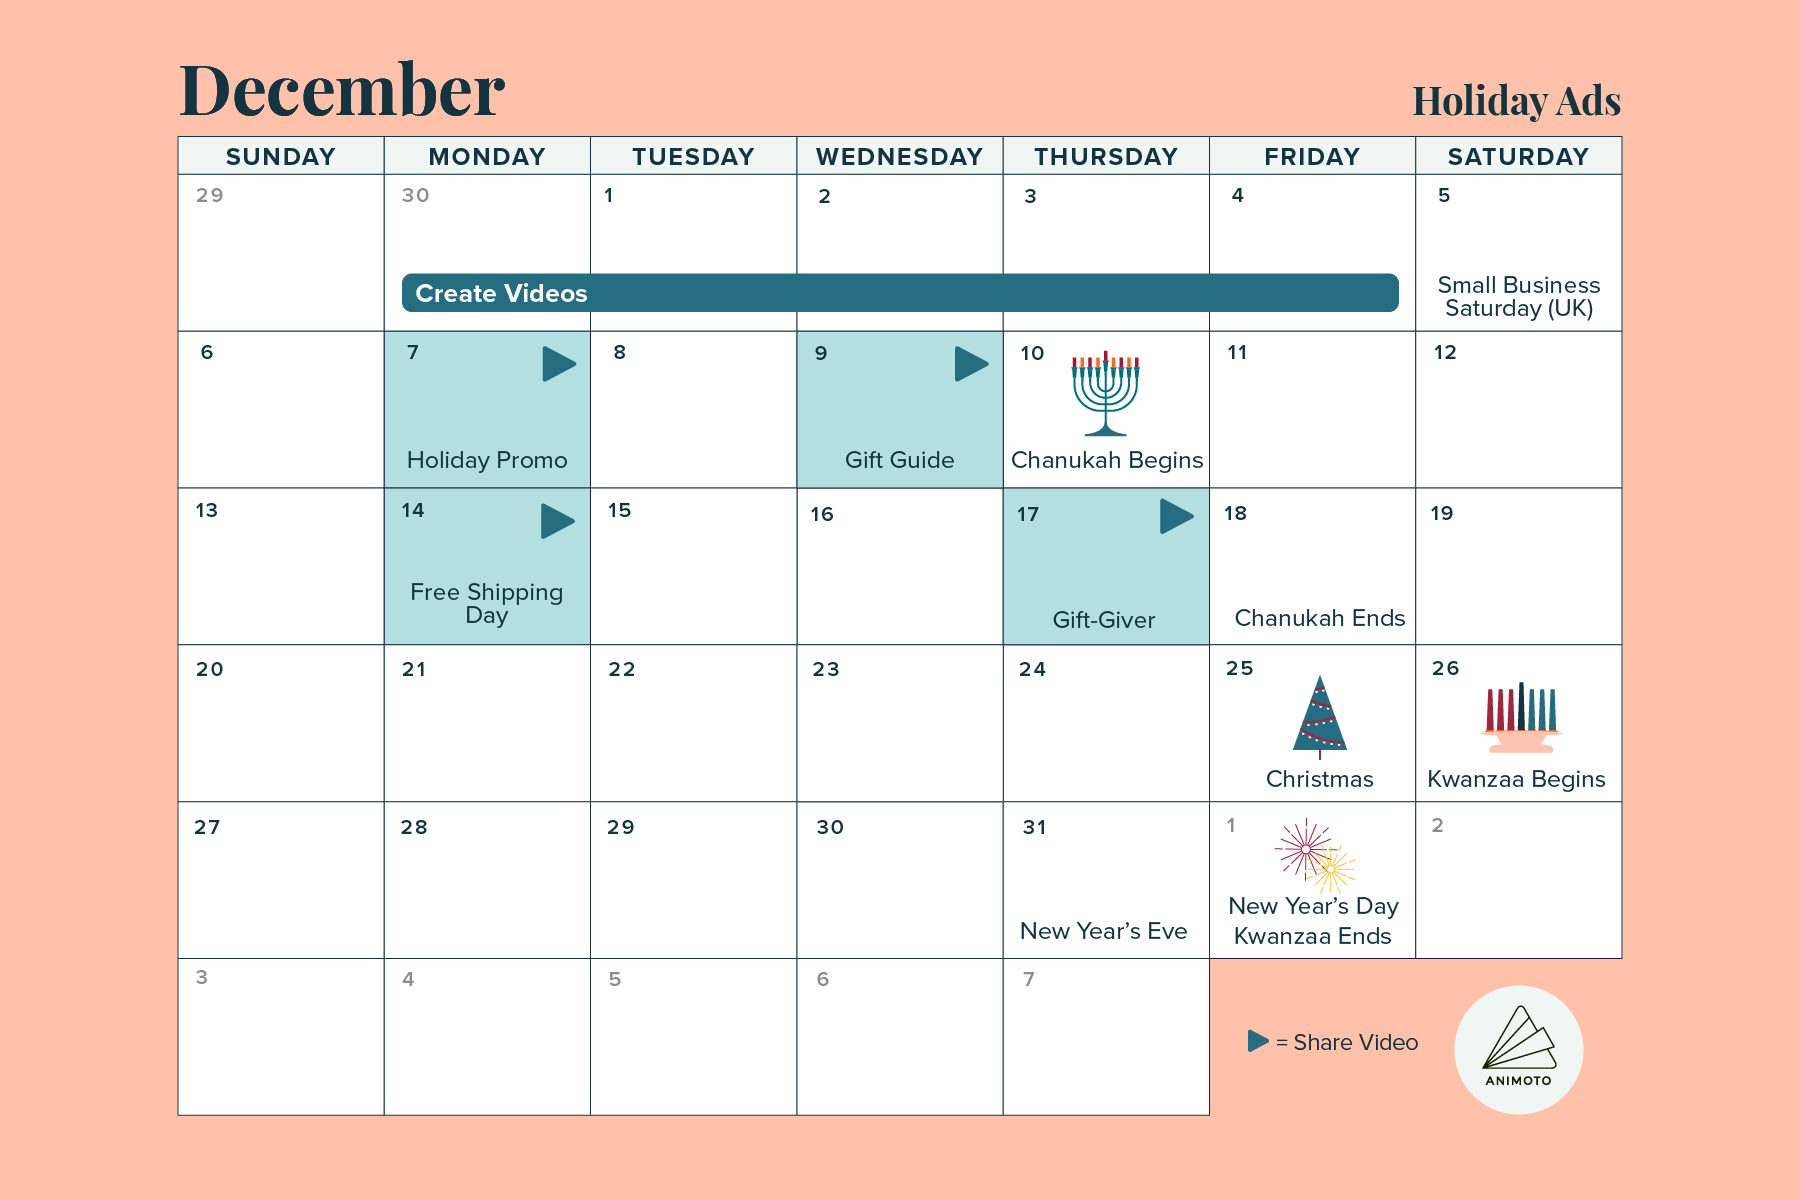 2020-Holiday-Calendar holiday-ads